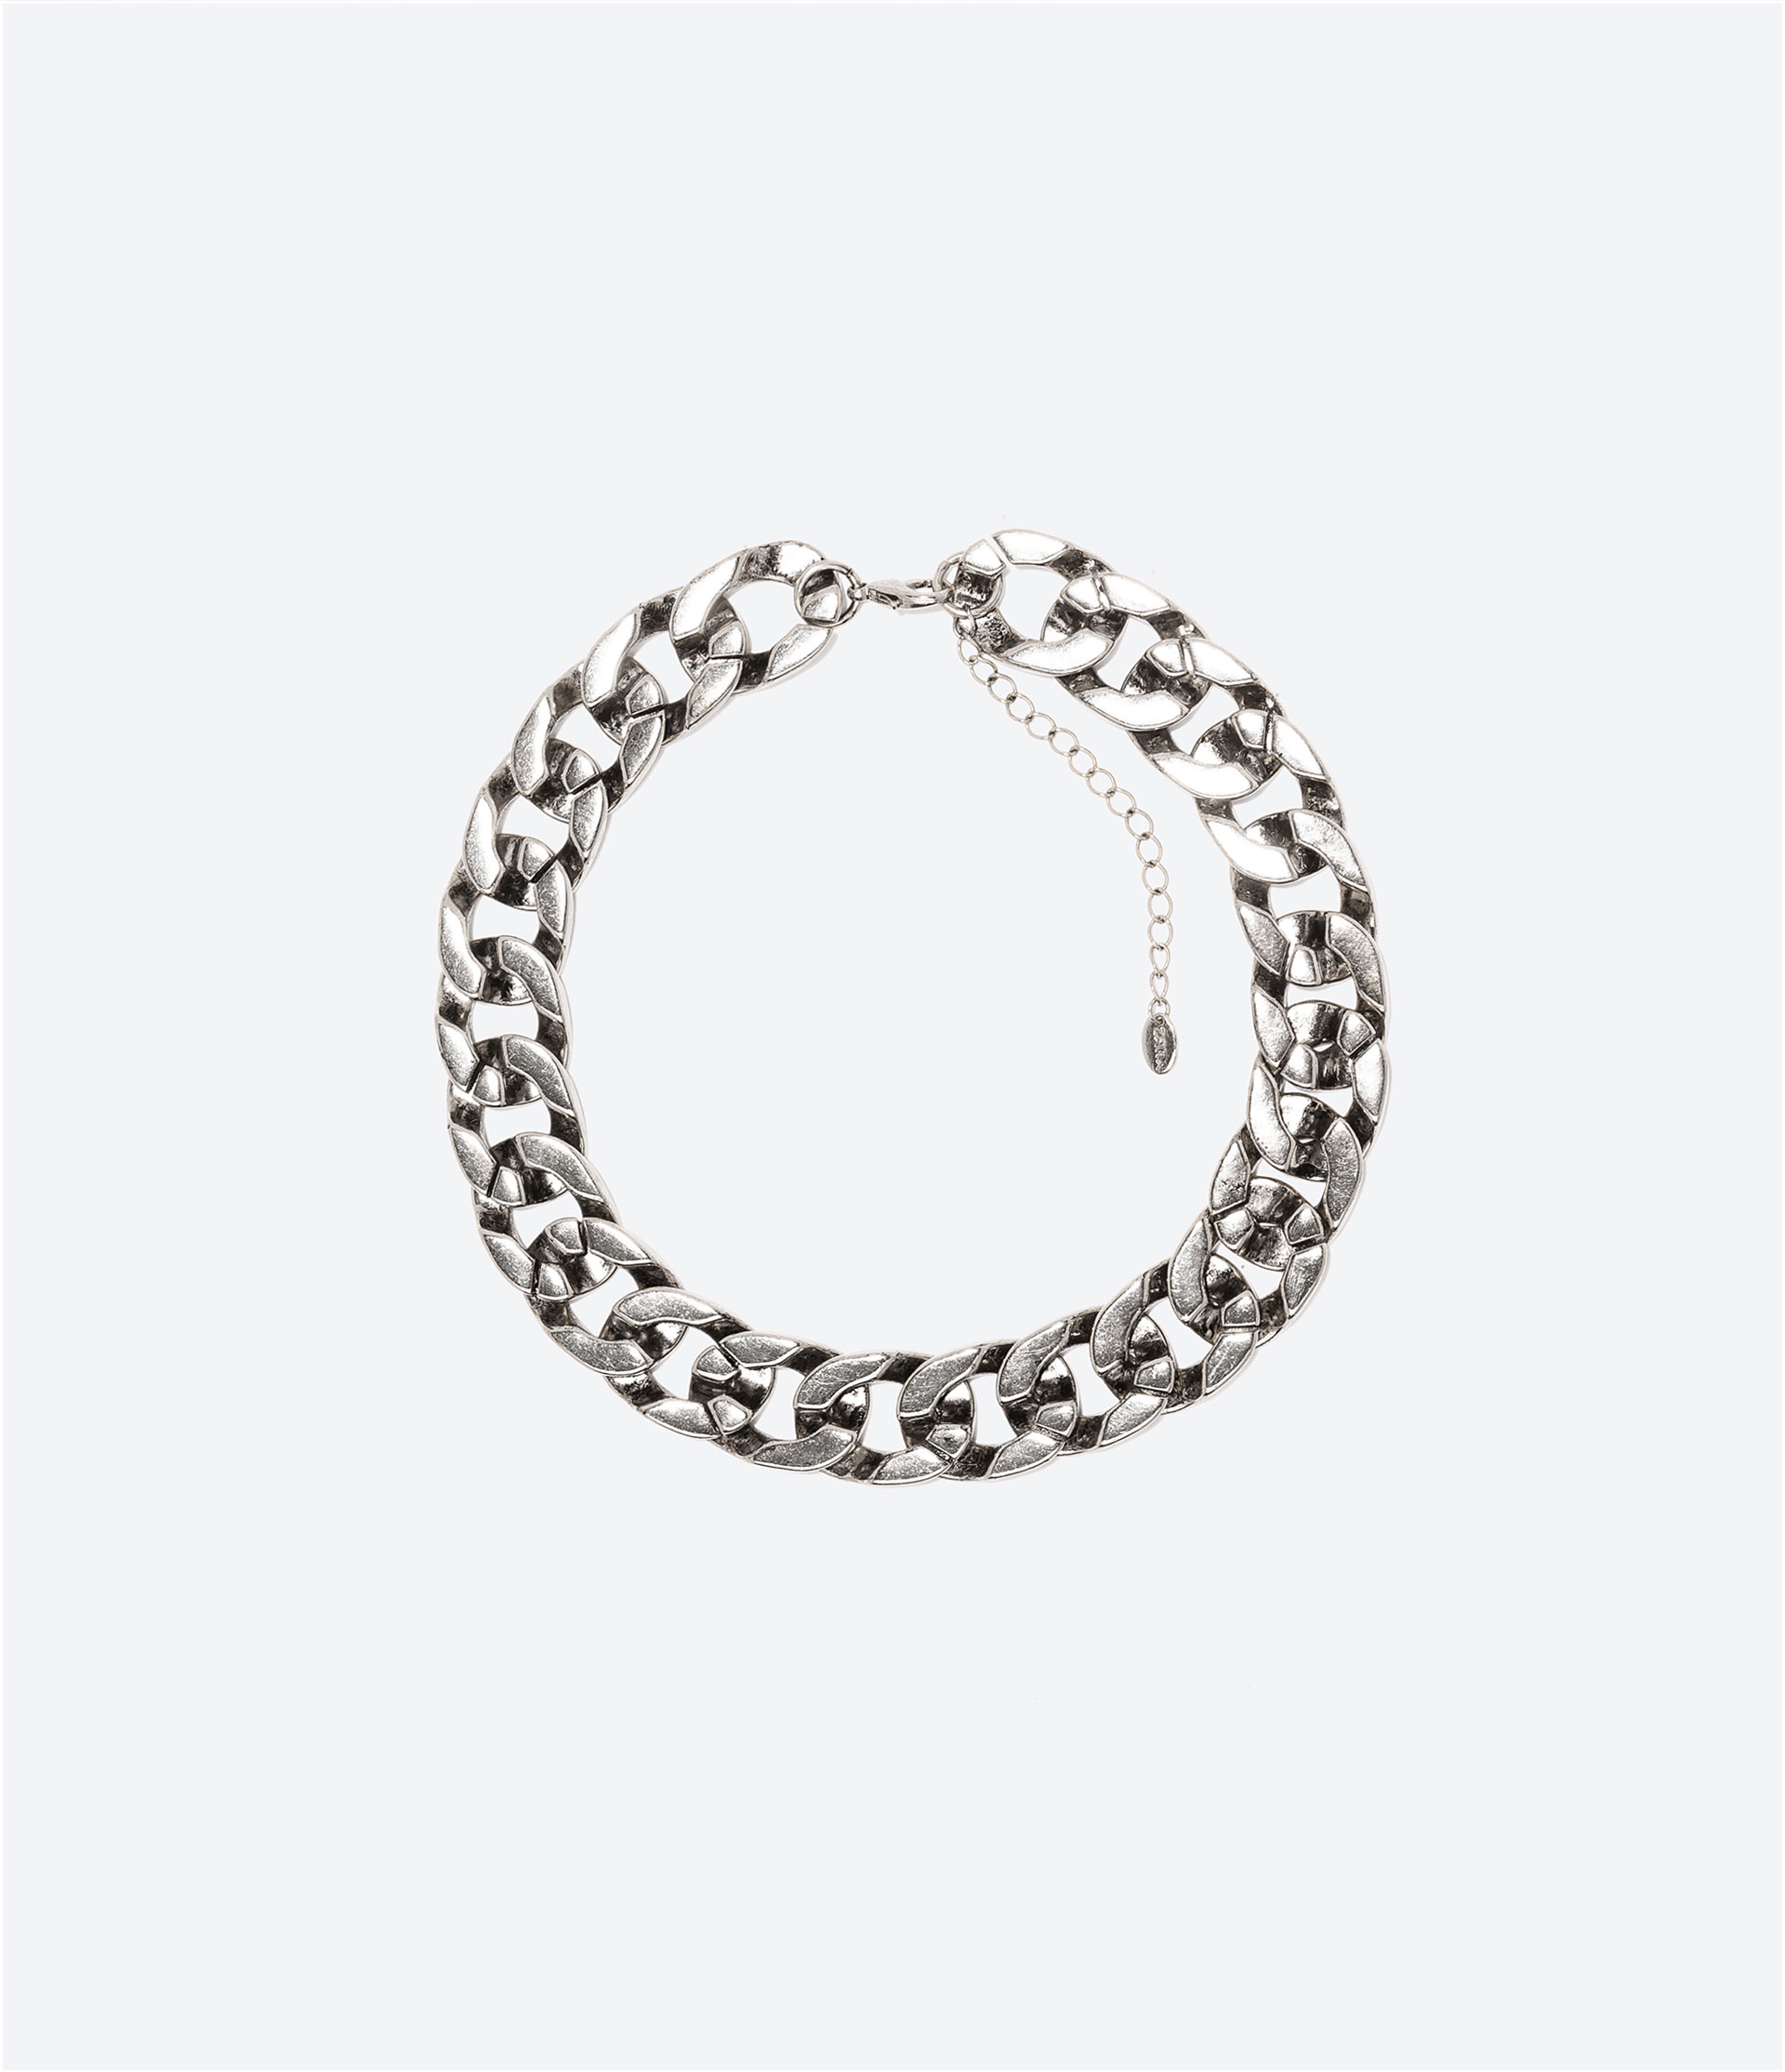 Collier maillons brillants